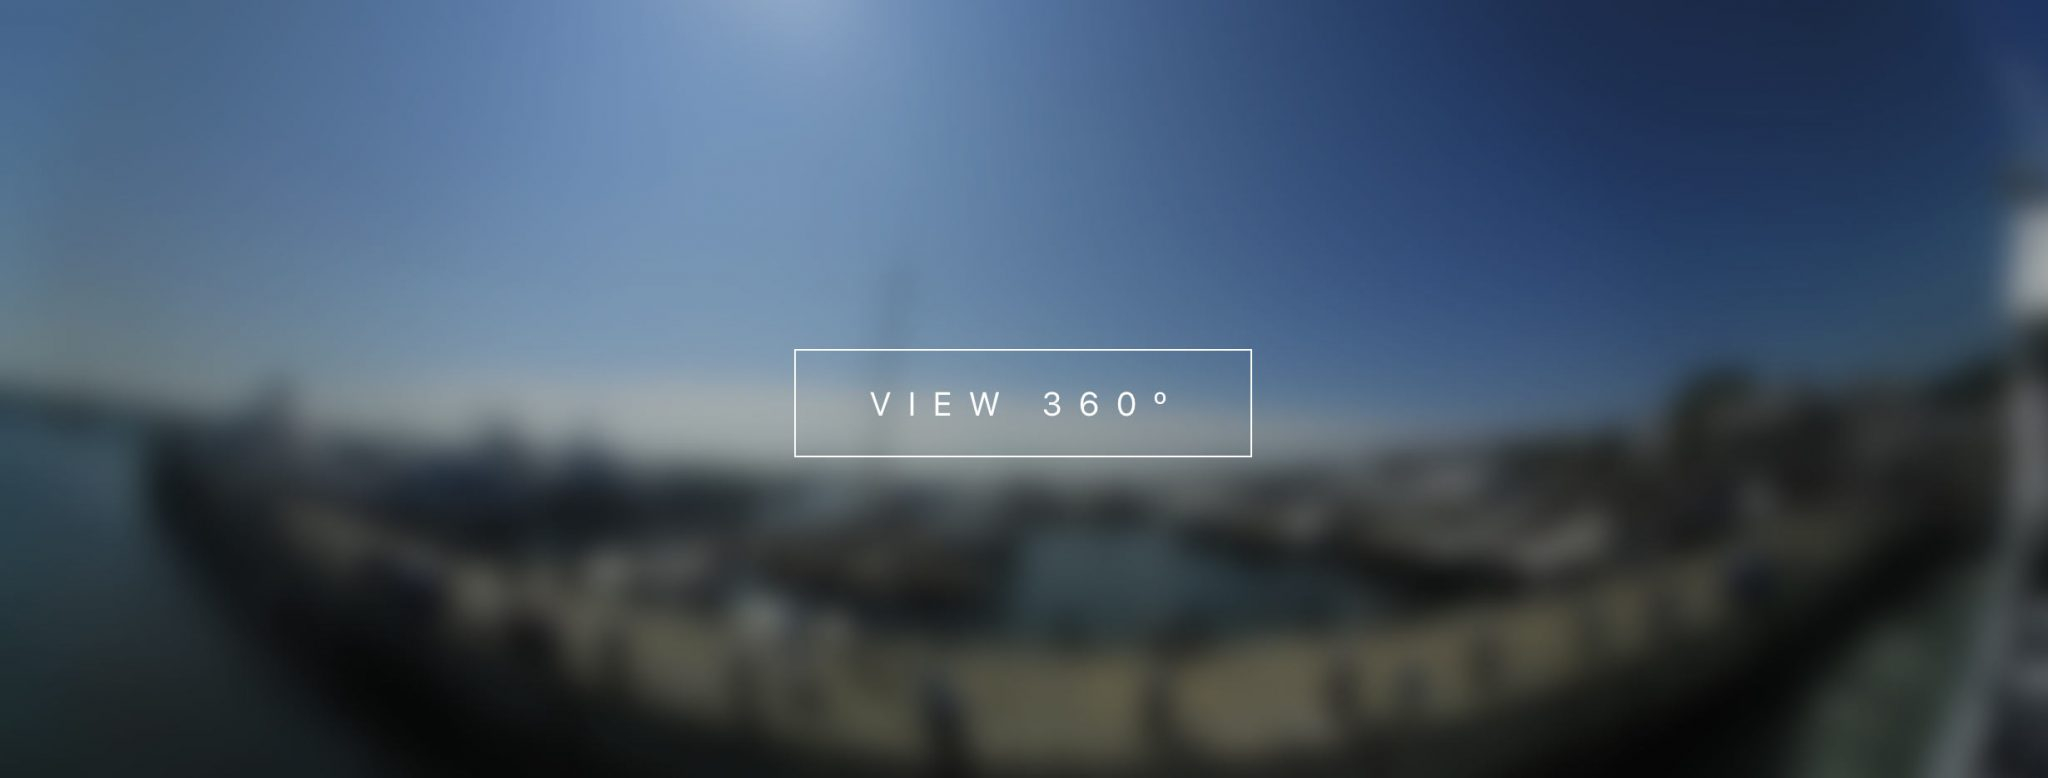 360 Interactive Imagery